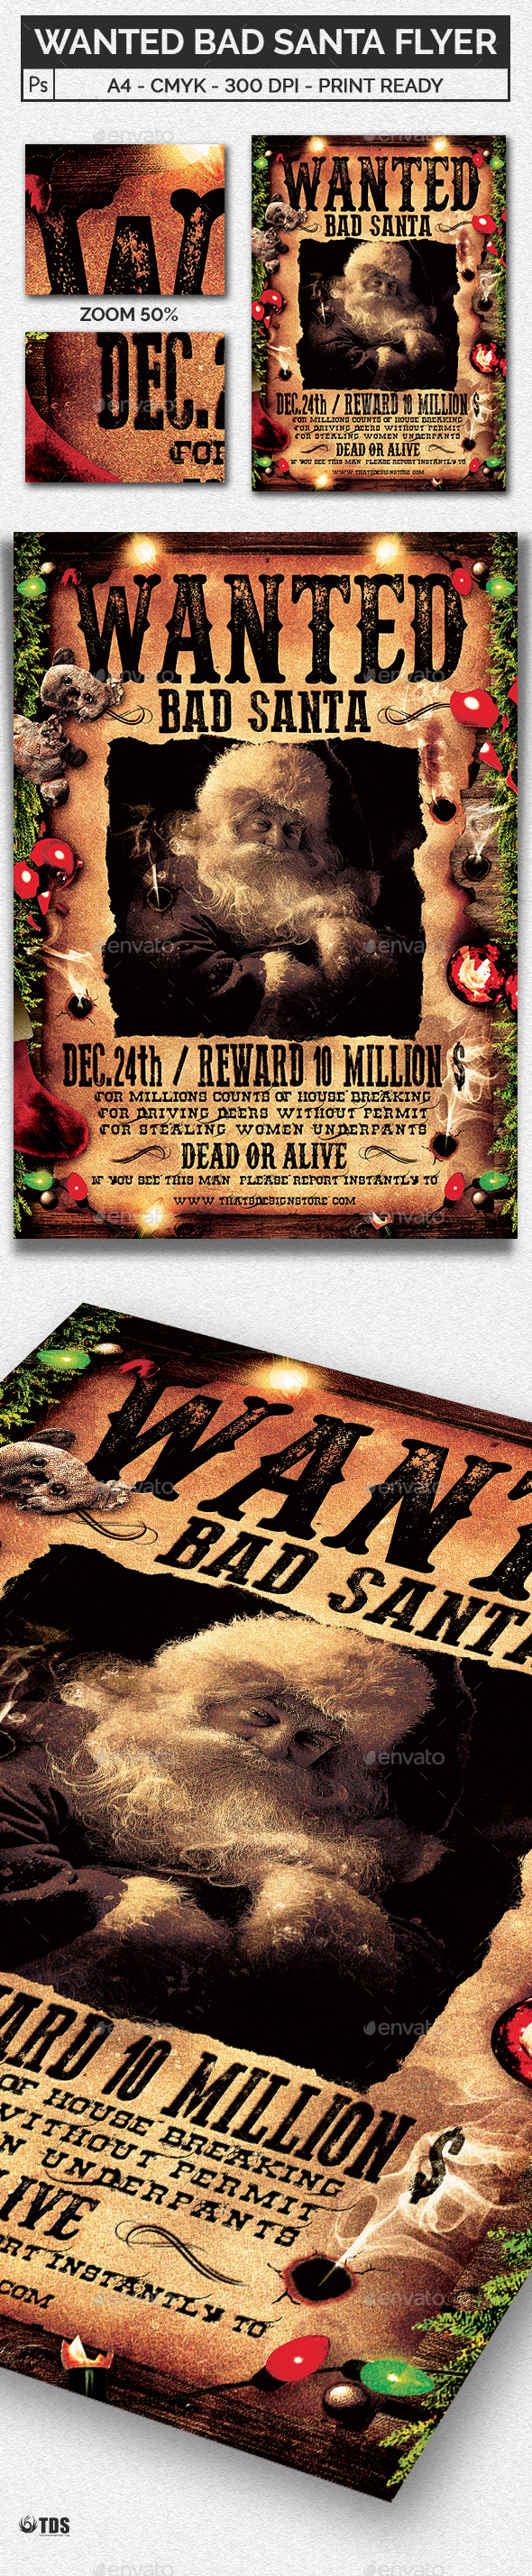 Wanted Bad Santa Flyer Template - Holidays Events